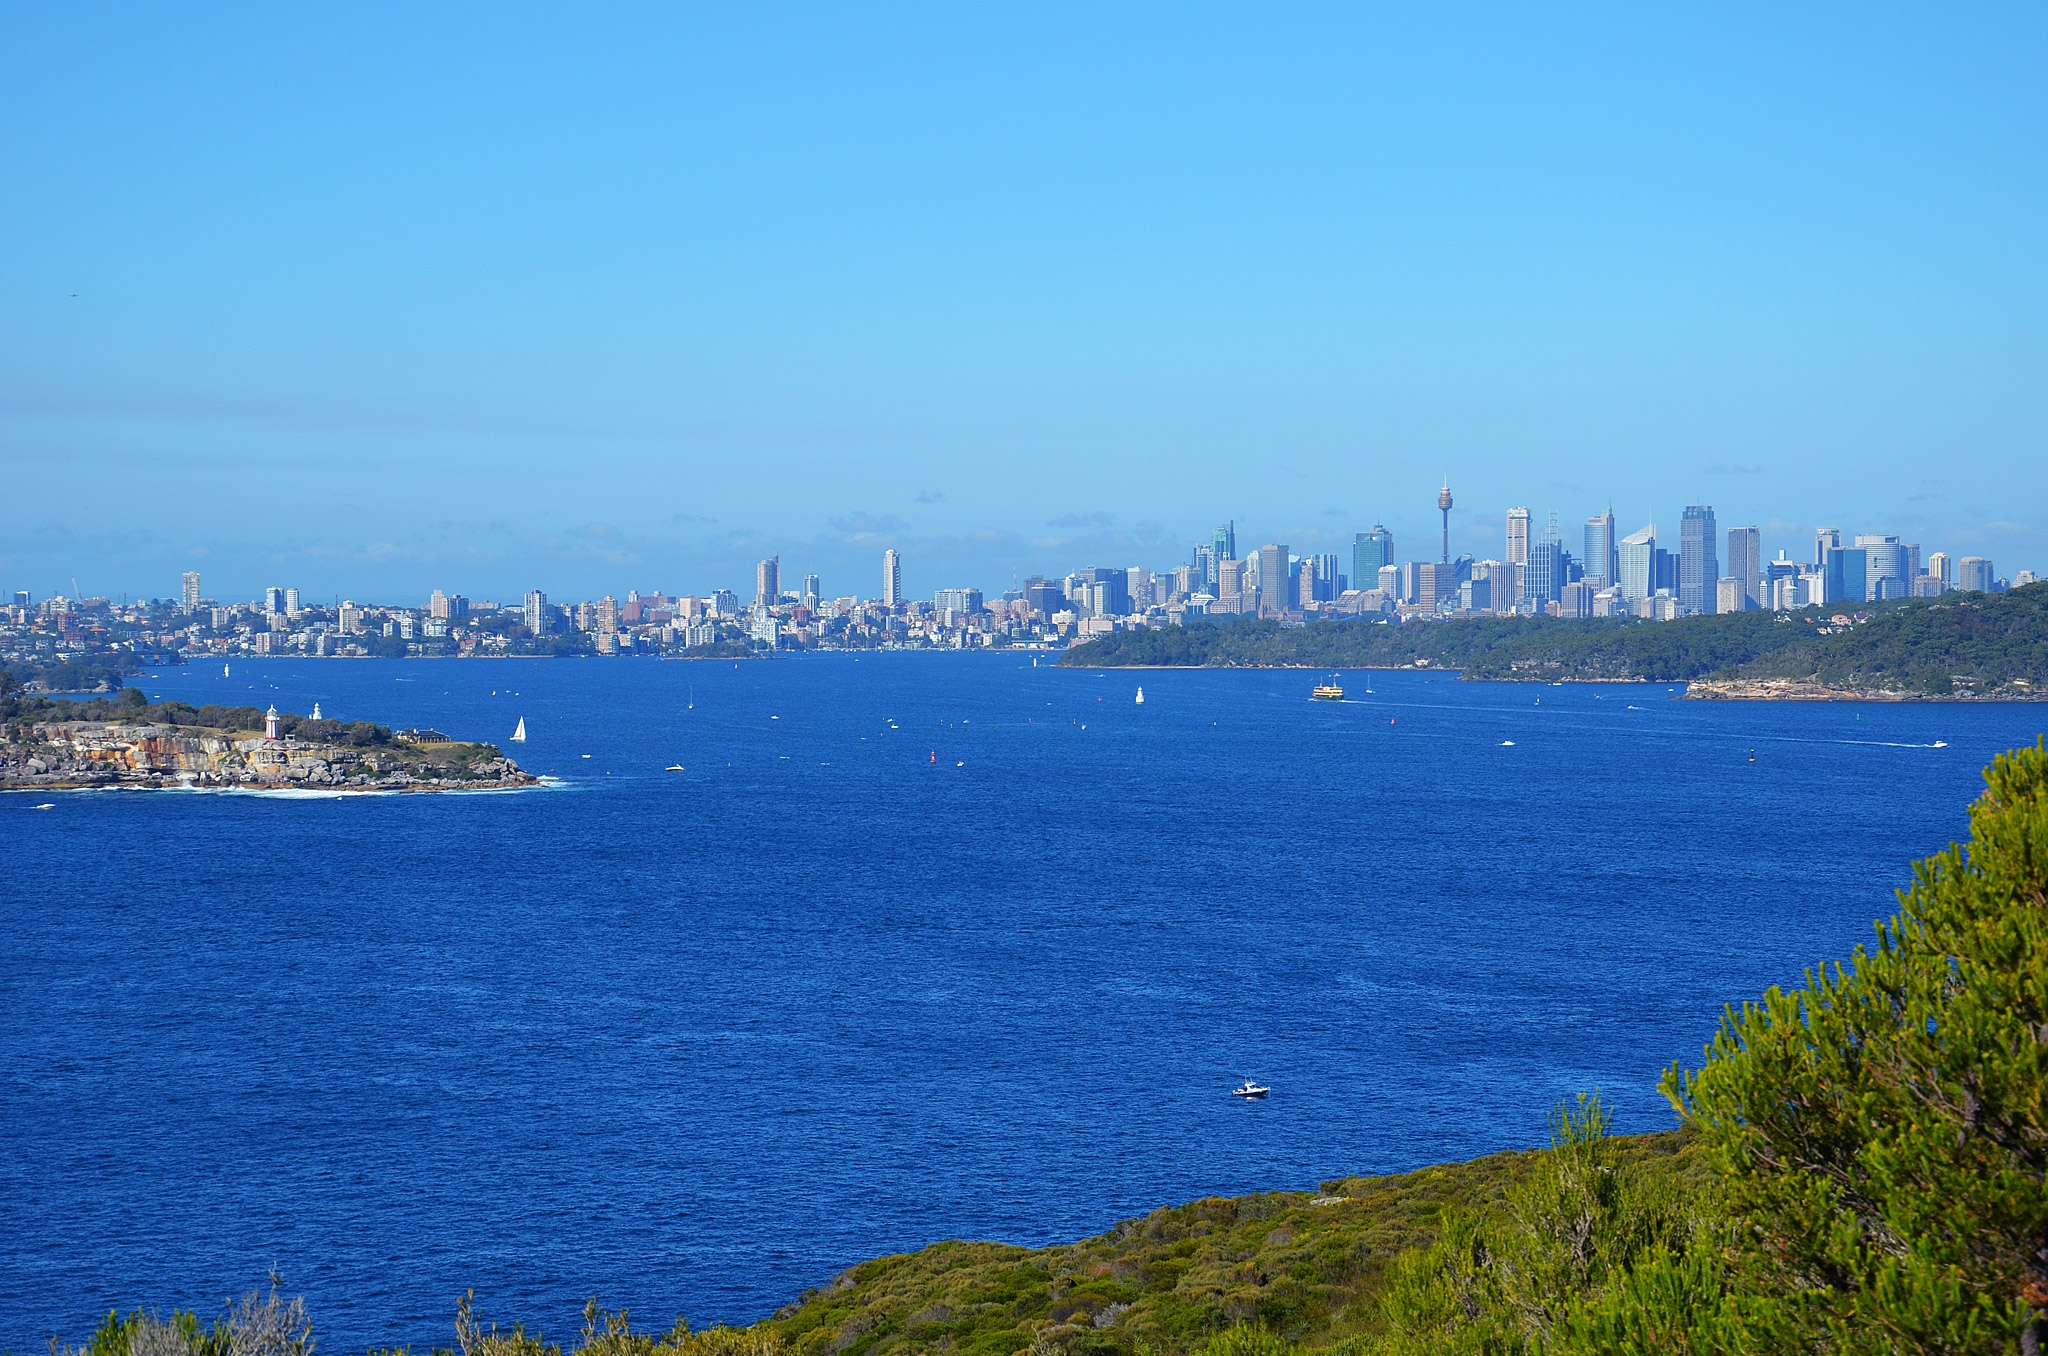 View from North Head - Image ©2014 ManlyAustralia.com